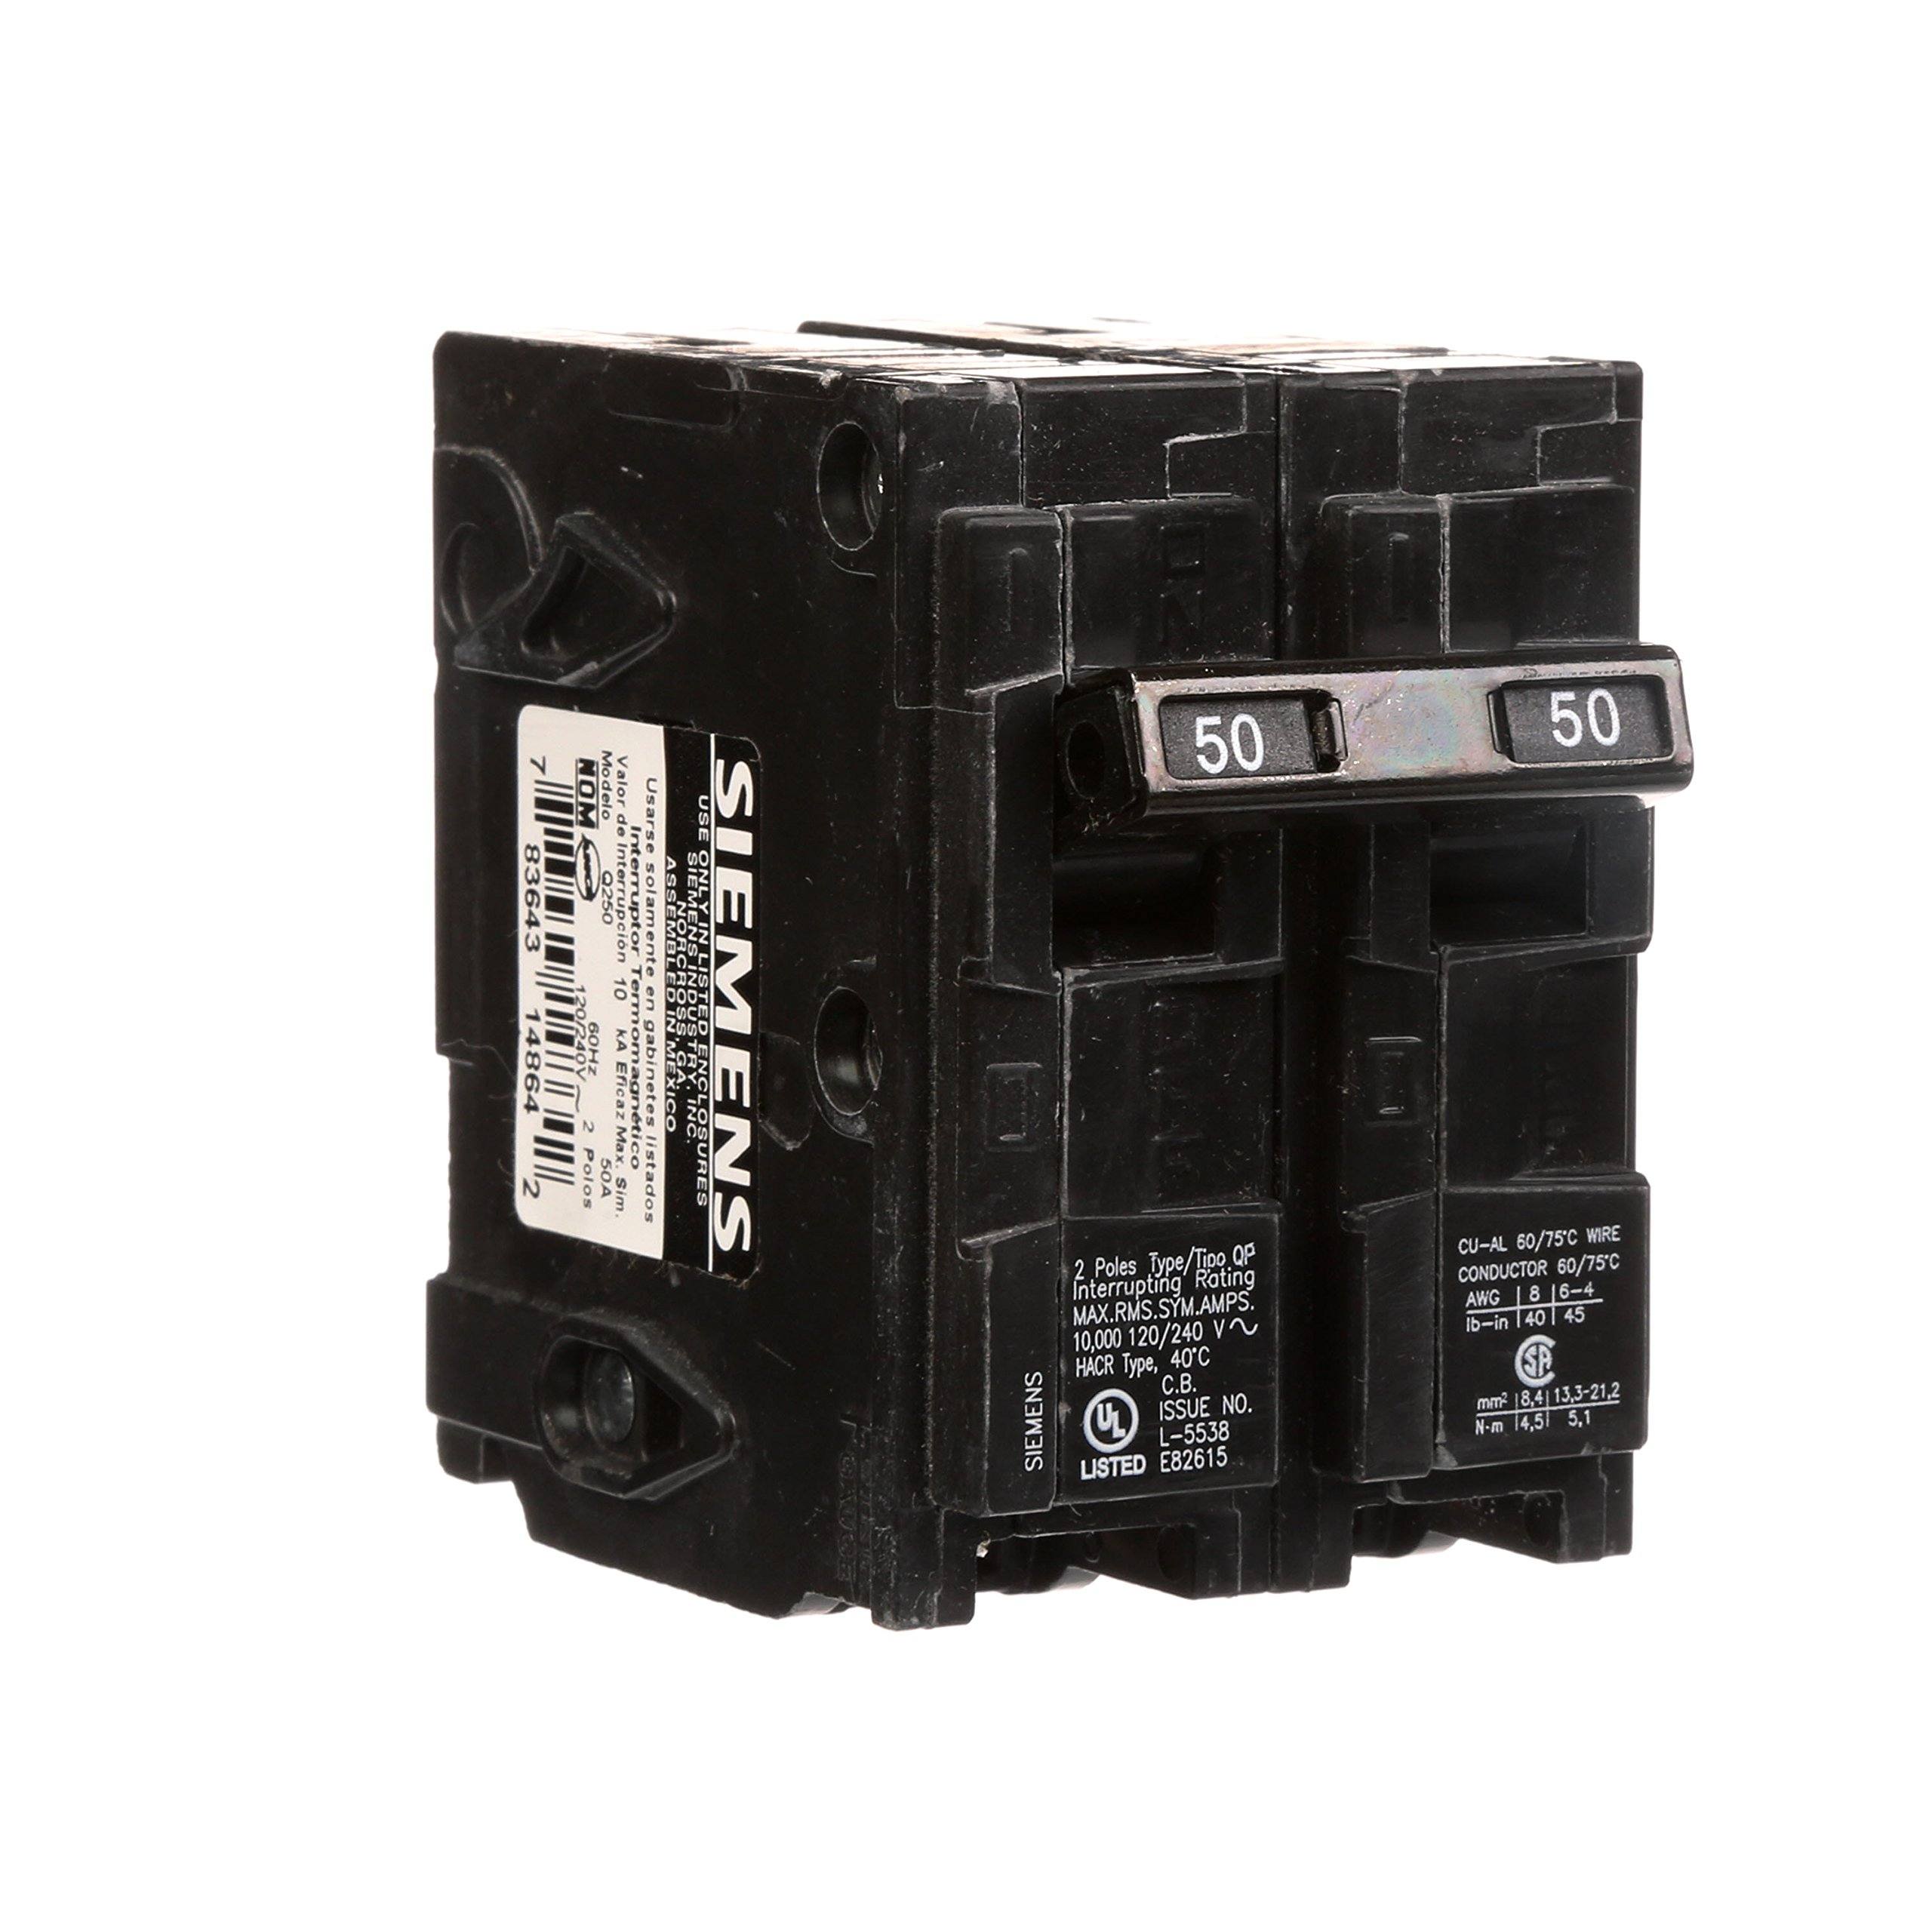 Q250 50-Amp Double Pole Type QP Circuit Breaker by Siemens (Image #3)